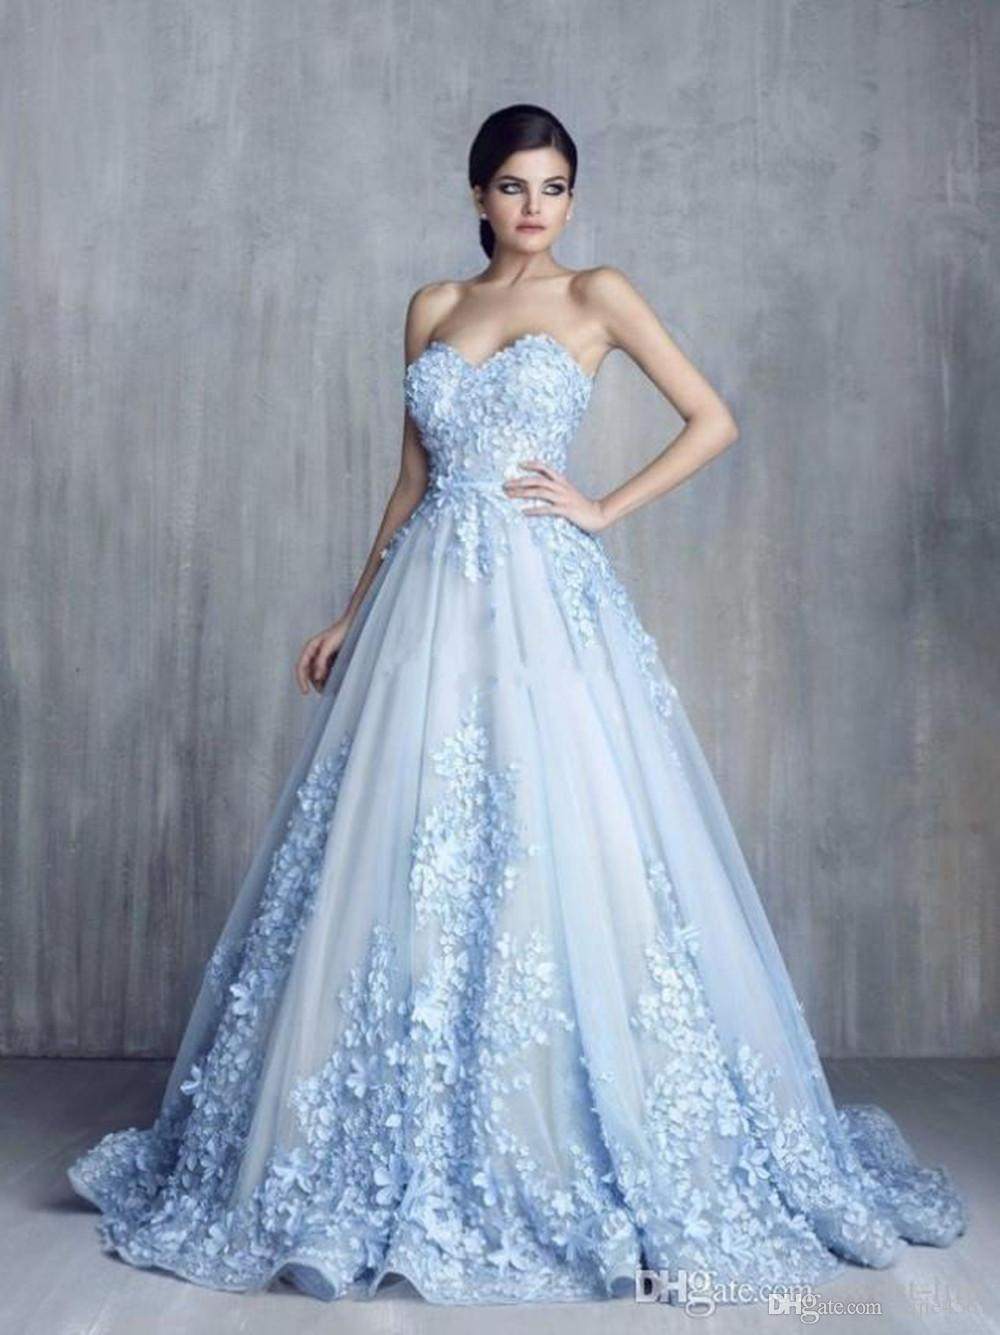 Charming 3D Floral Light Blue Appliques Lange Abendkleider 2019 Neue Sexy Handmade Flower Sweetheart Ballkleid Lace Prom Pageant Kleider